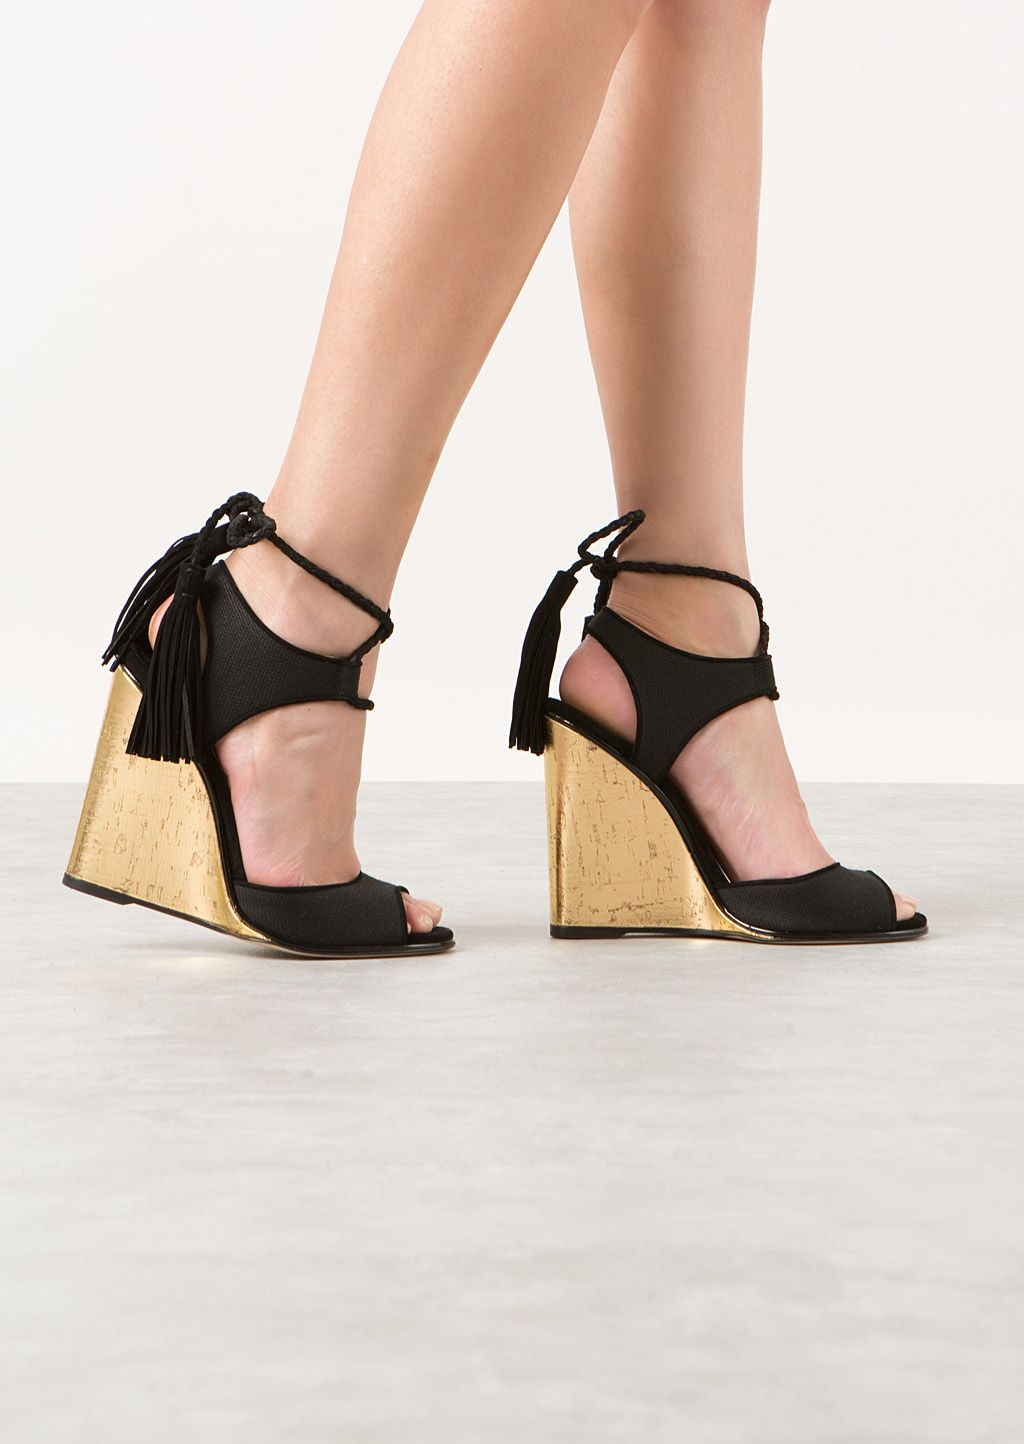 d70fa7746bd3 Paul Andrew Wedges    Paul Andrew black canvas and suede wedges sandals